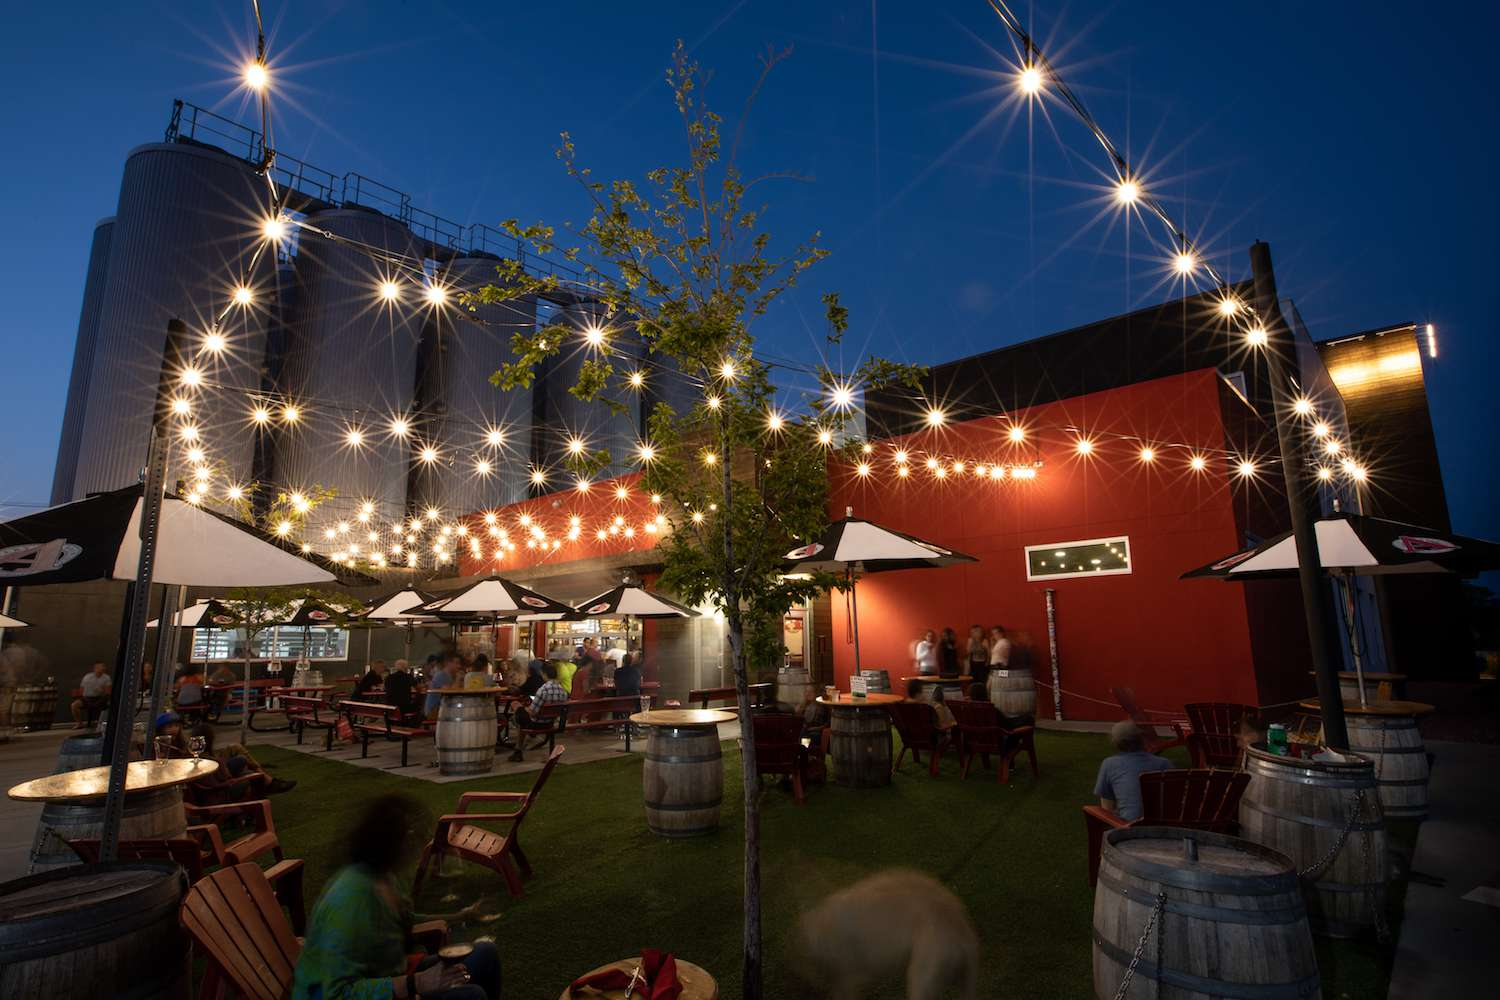 The outdoor patio at Avery Brewing